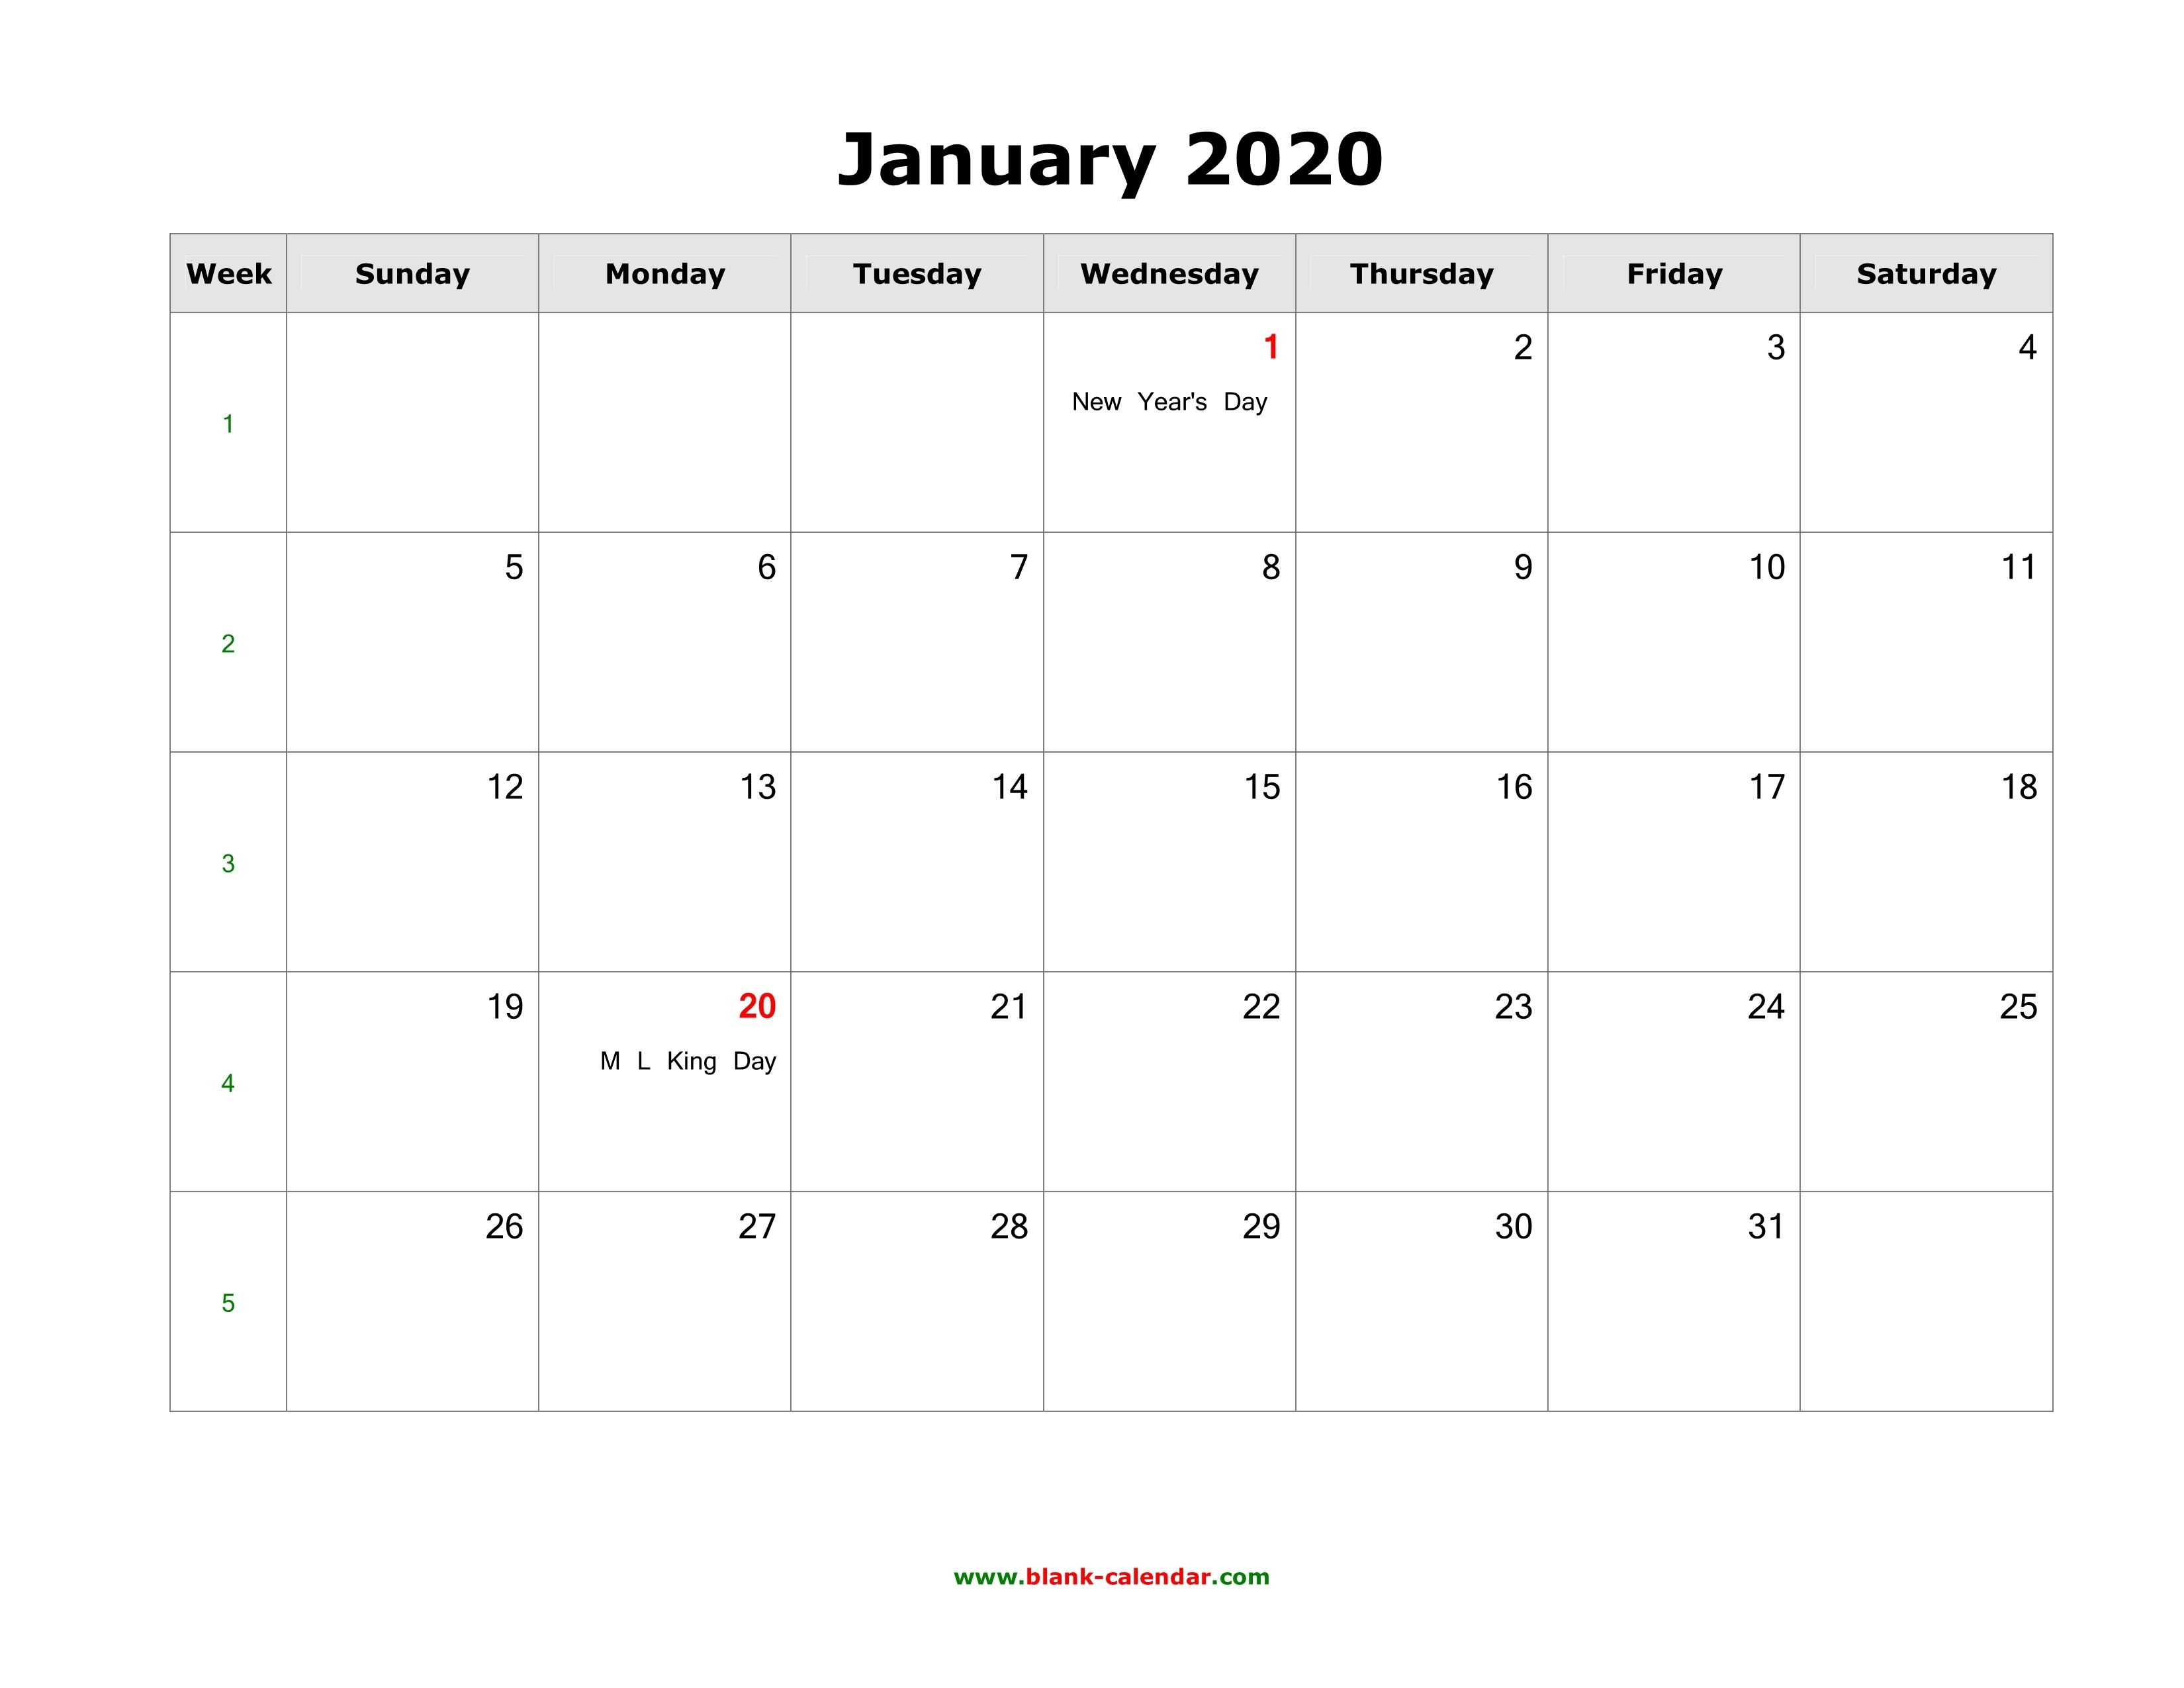 Download January 2020 Blank Calendar With Us Holidays-January 2020 Calendar Holidays